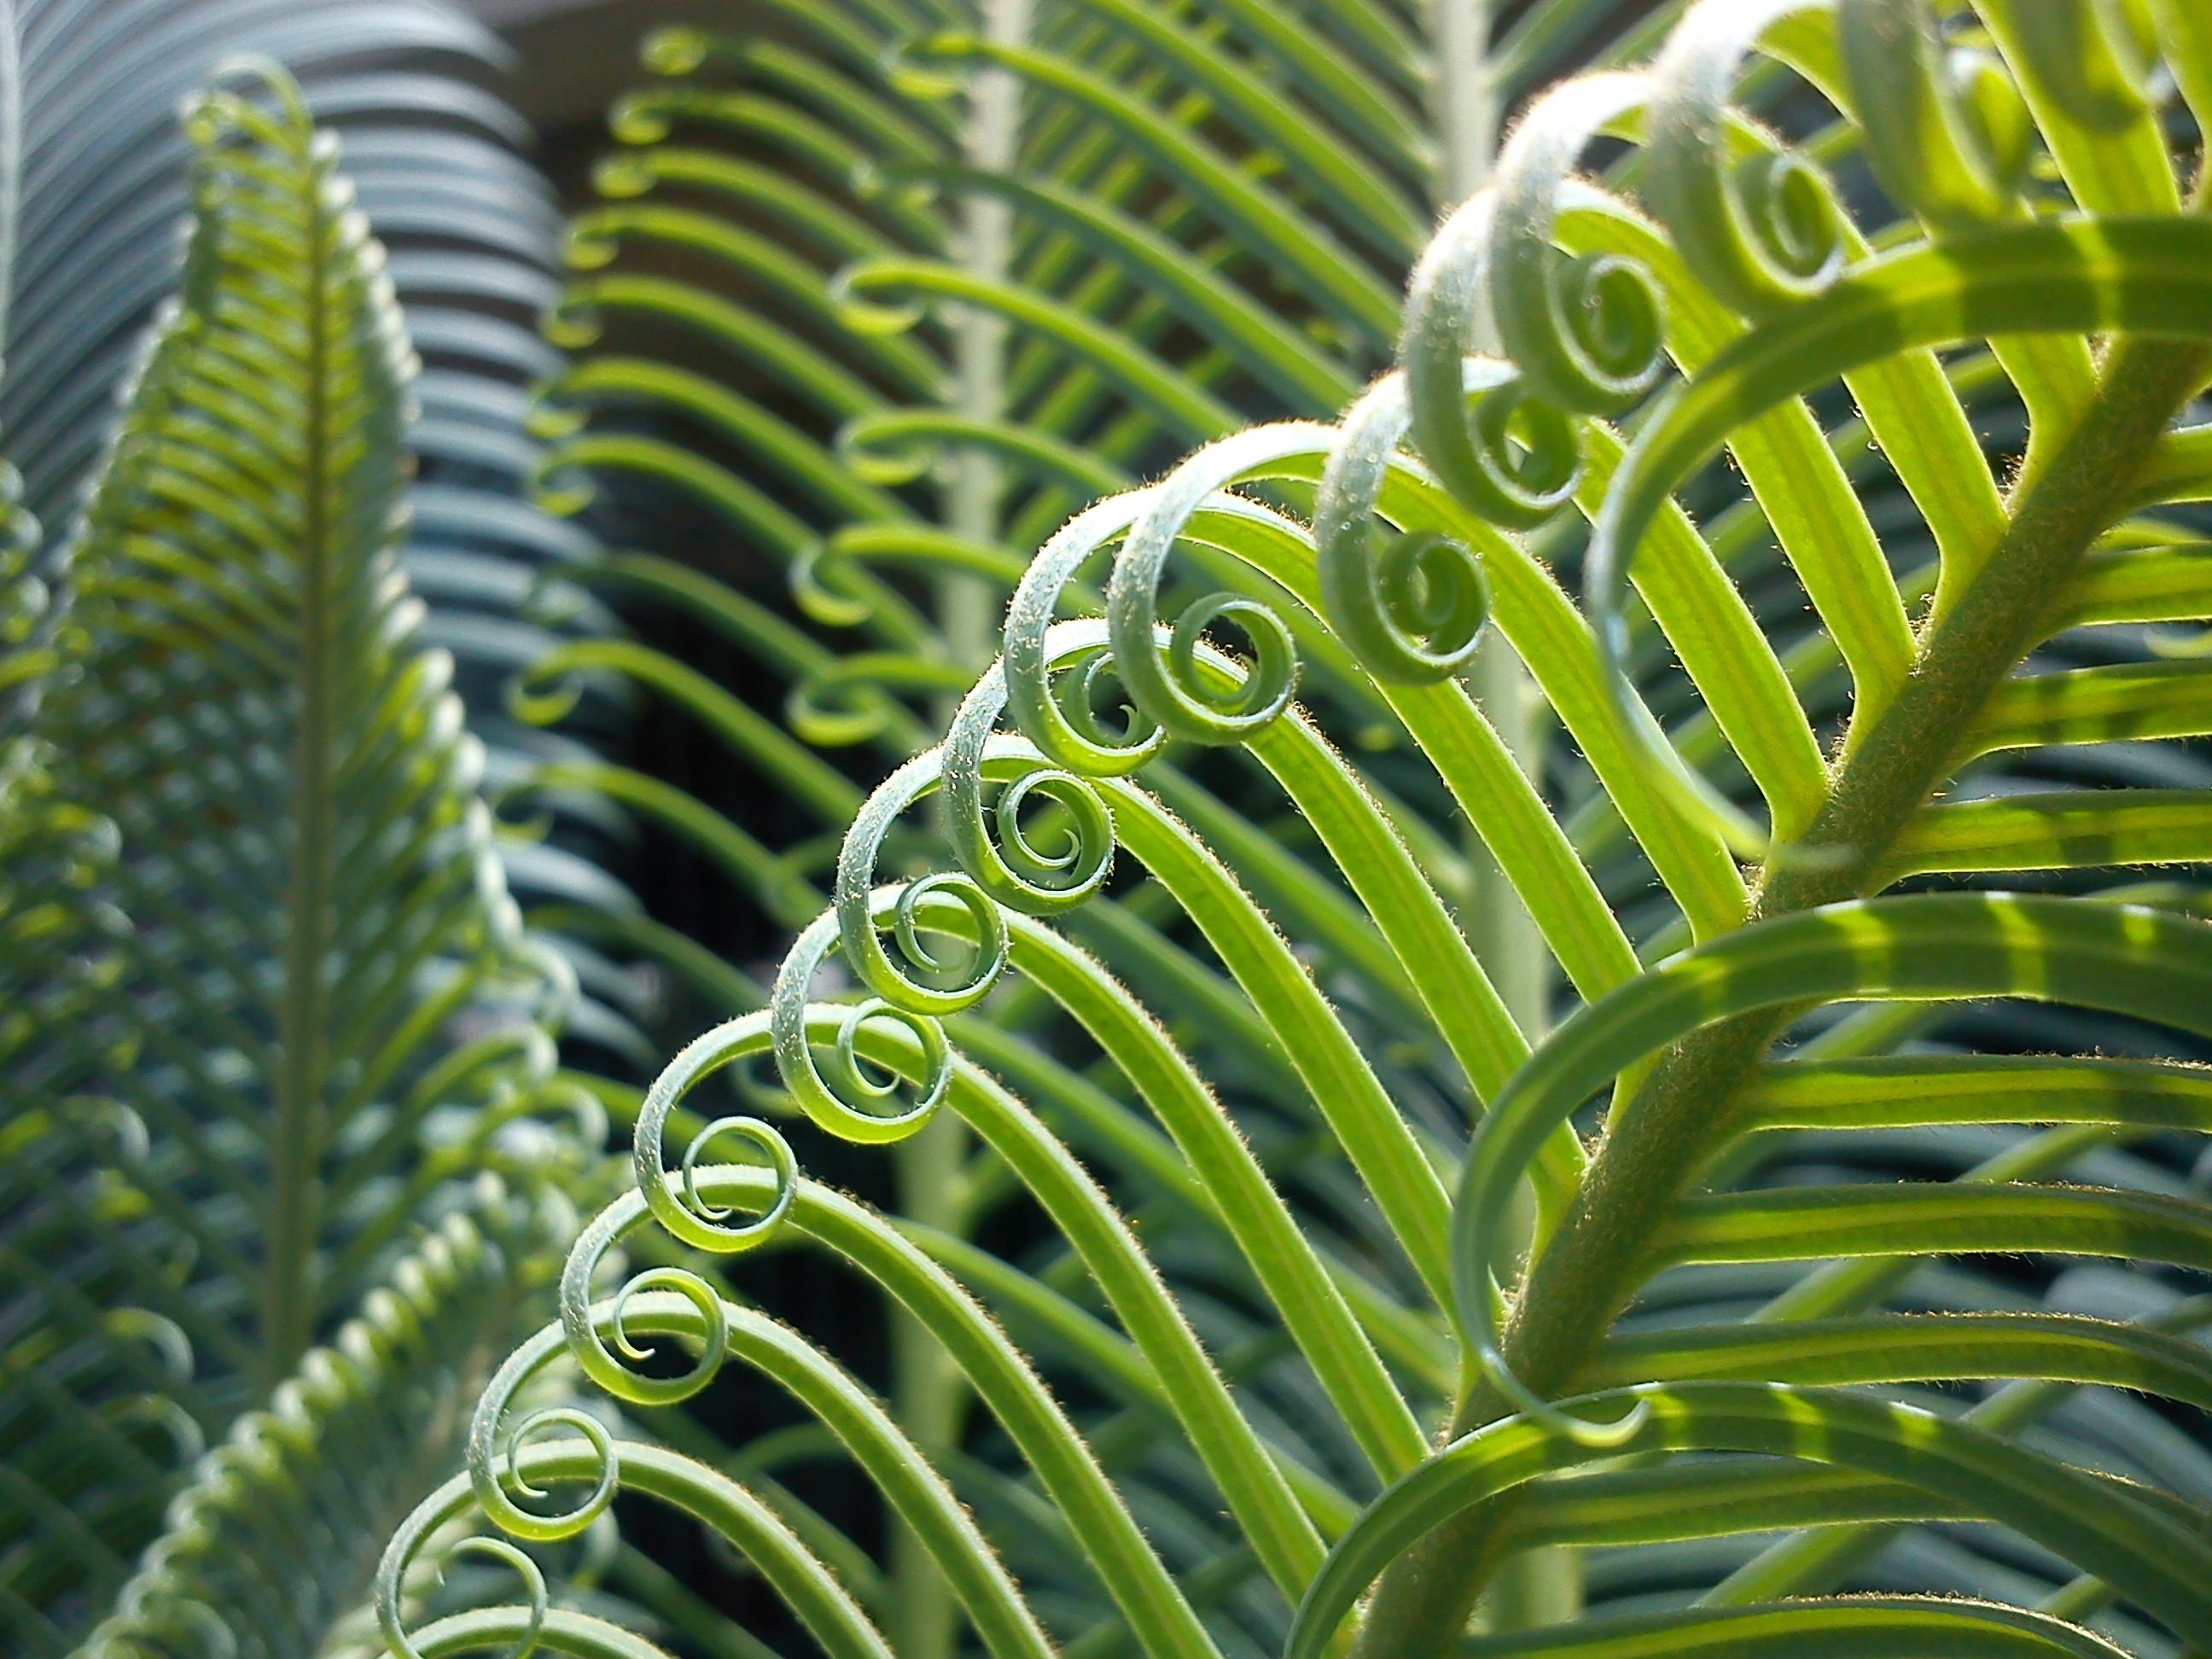 Lock Screen Wallpaper Iphone X Green Curly Plant 183 Free Stock Photo